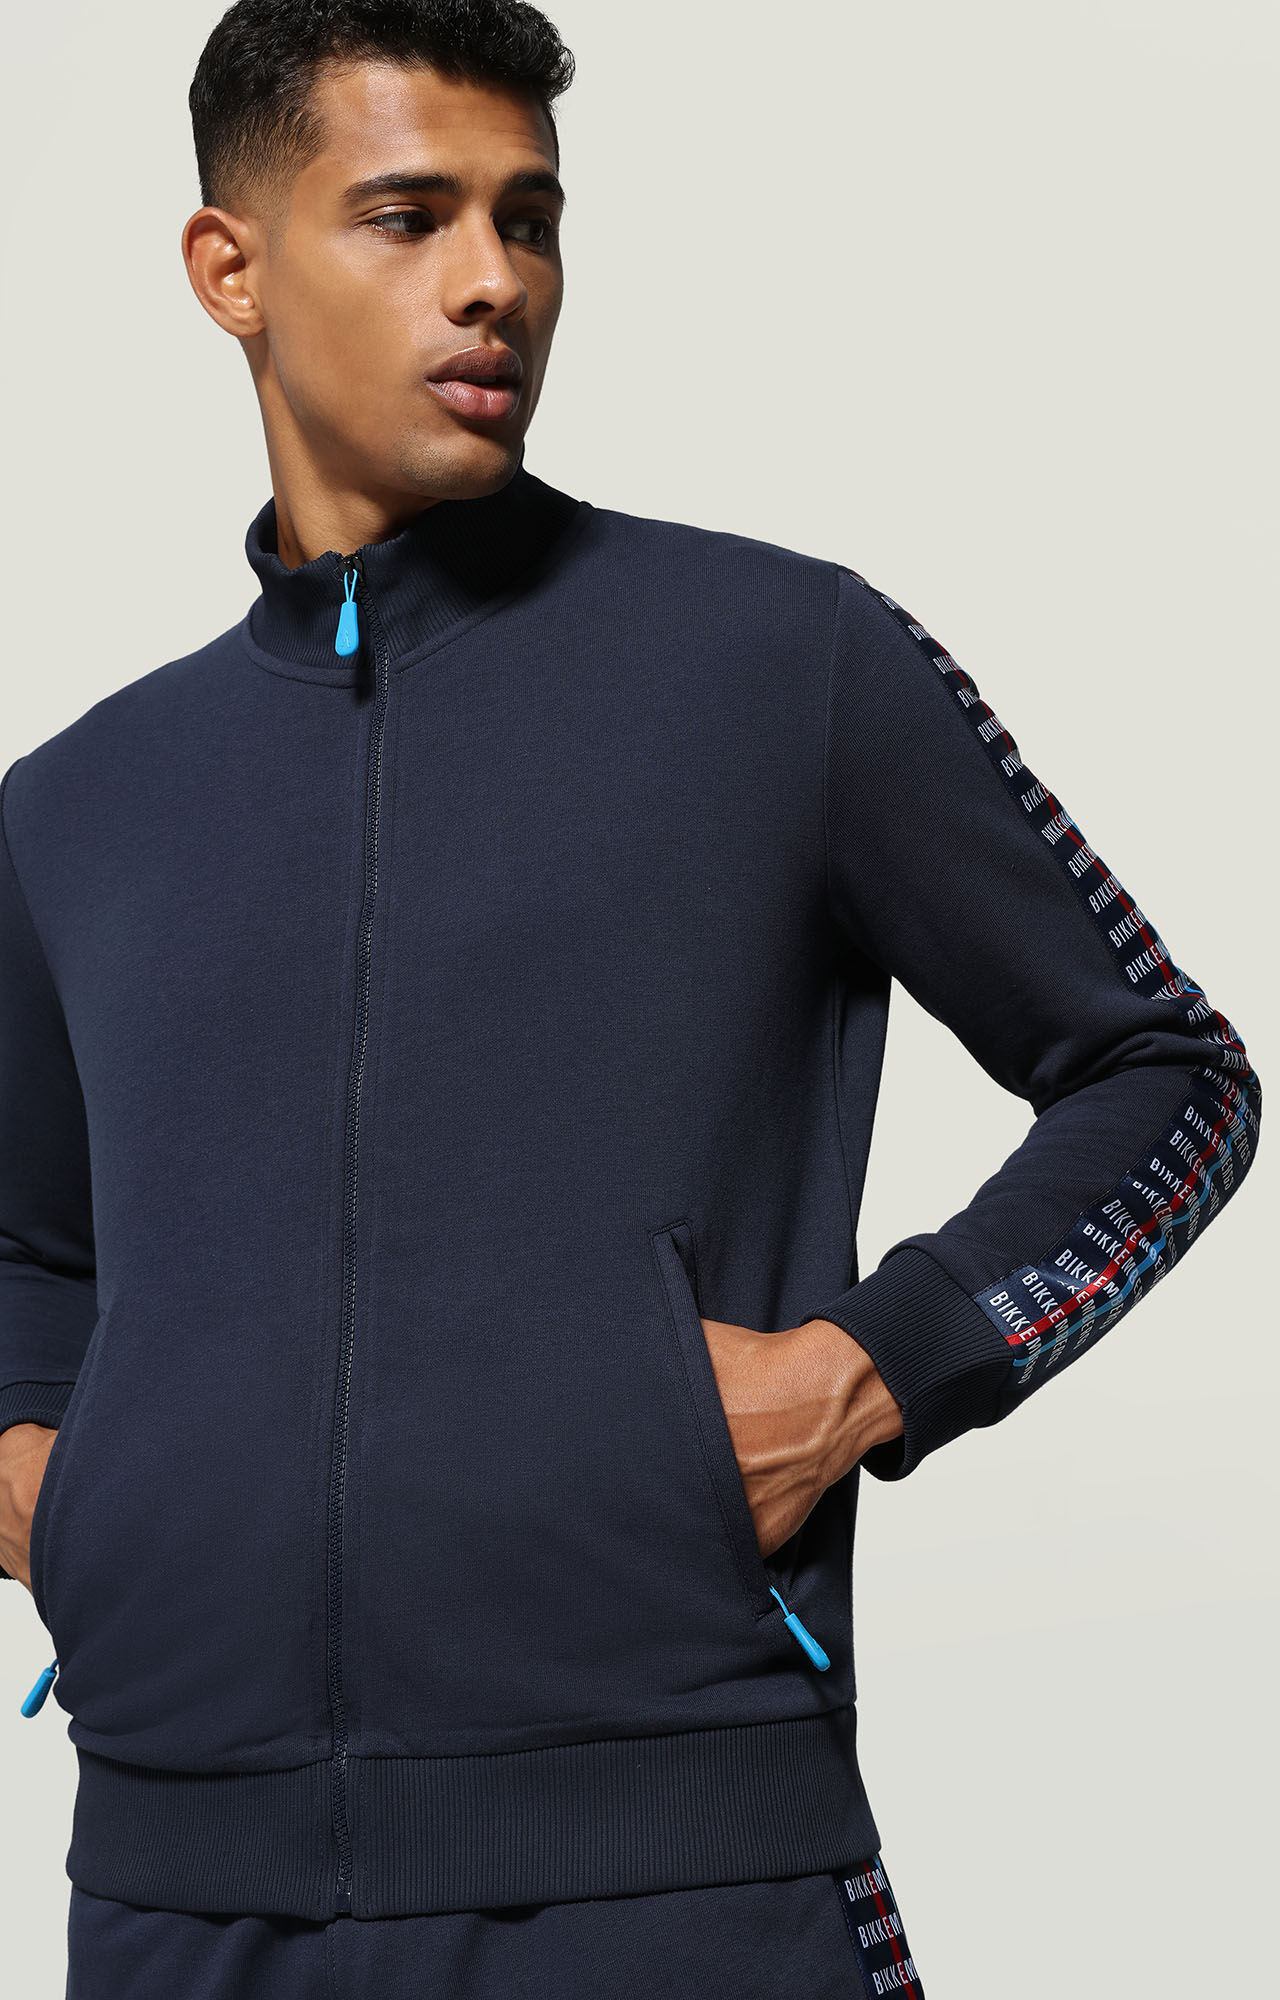 50/% OFFBIKKEMBERGS ZIP UP SWEATSHIRT TRACK JACKET TRACKSUIT TOP GREY /& BLACK